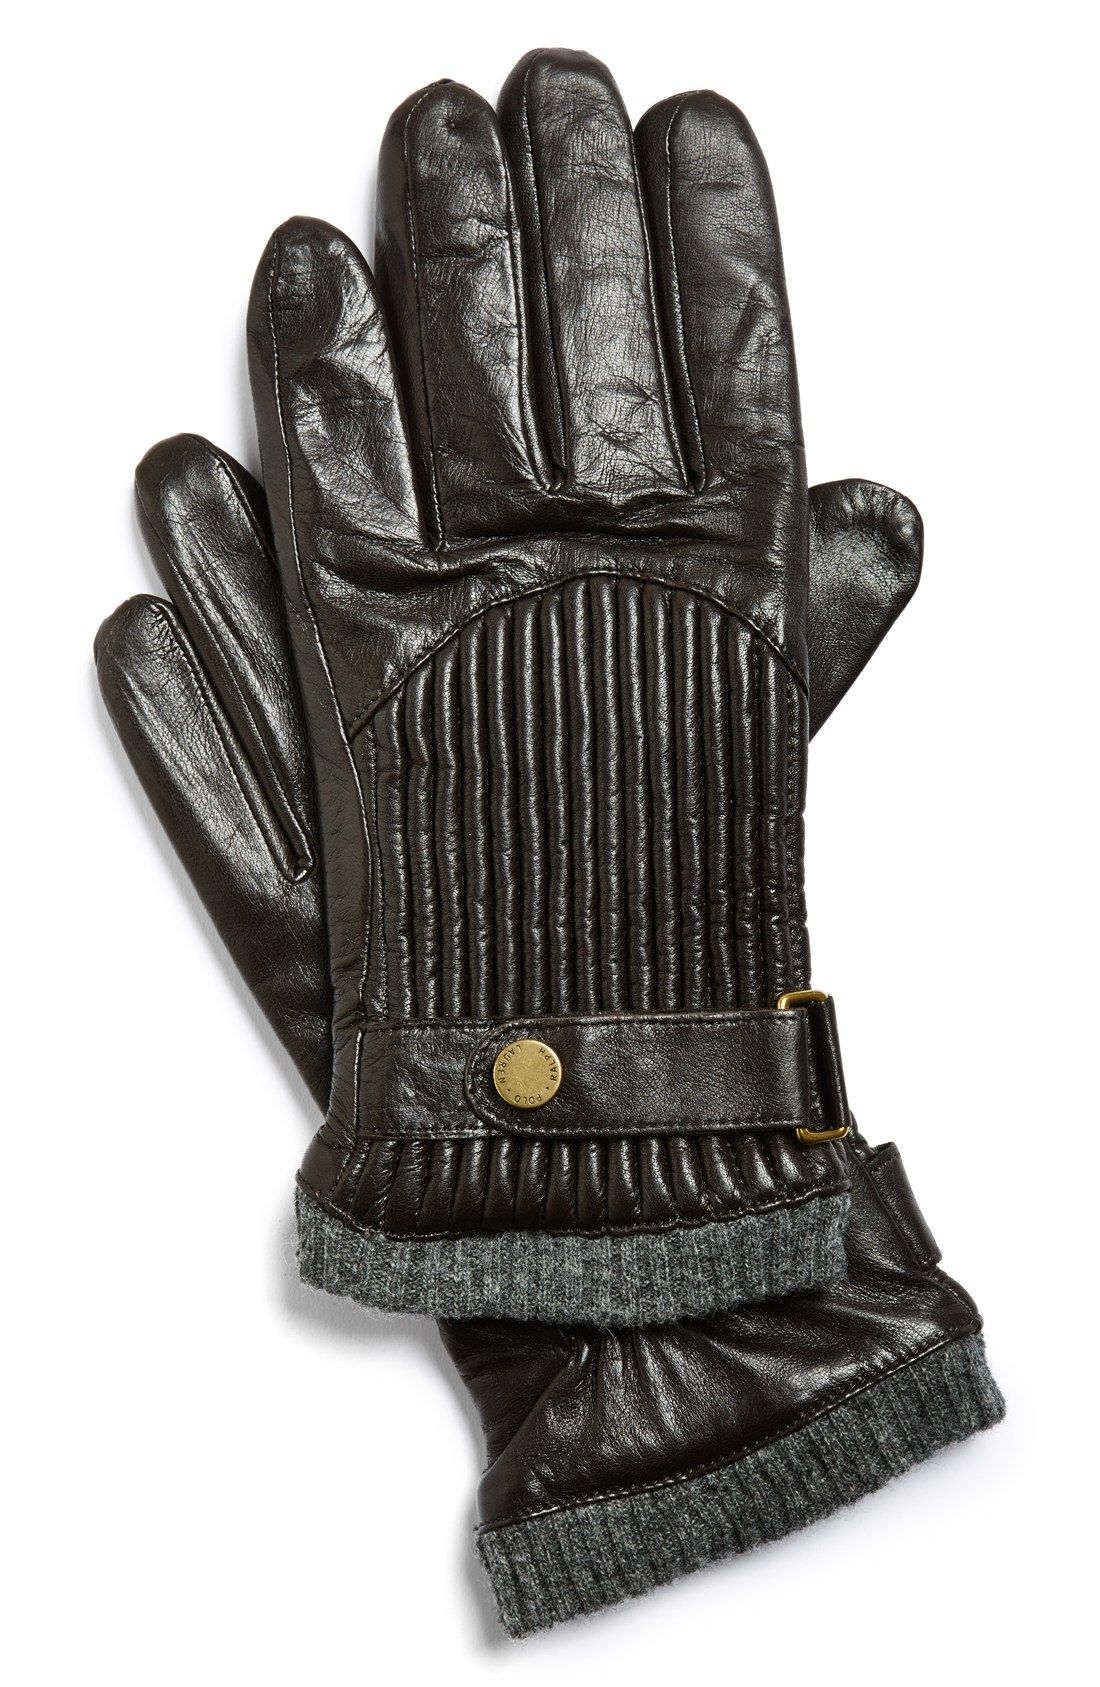 Men's fashion   Leather moto-inspired gloves.   Winter Fashion ... : quilted leather gloves mens - Adamdwight.com